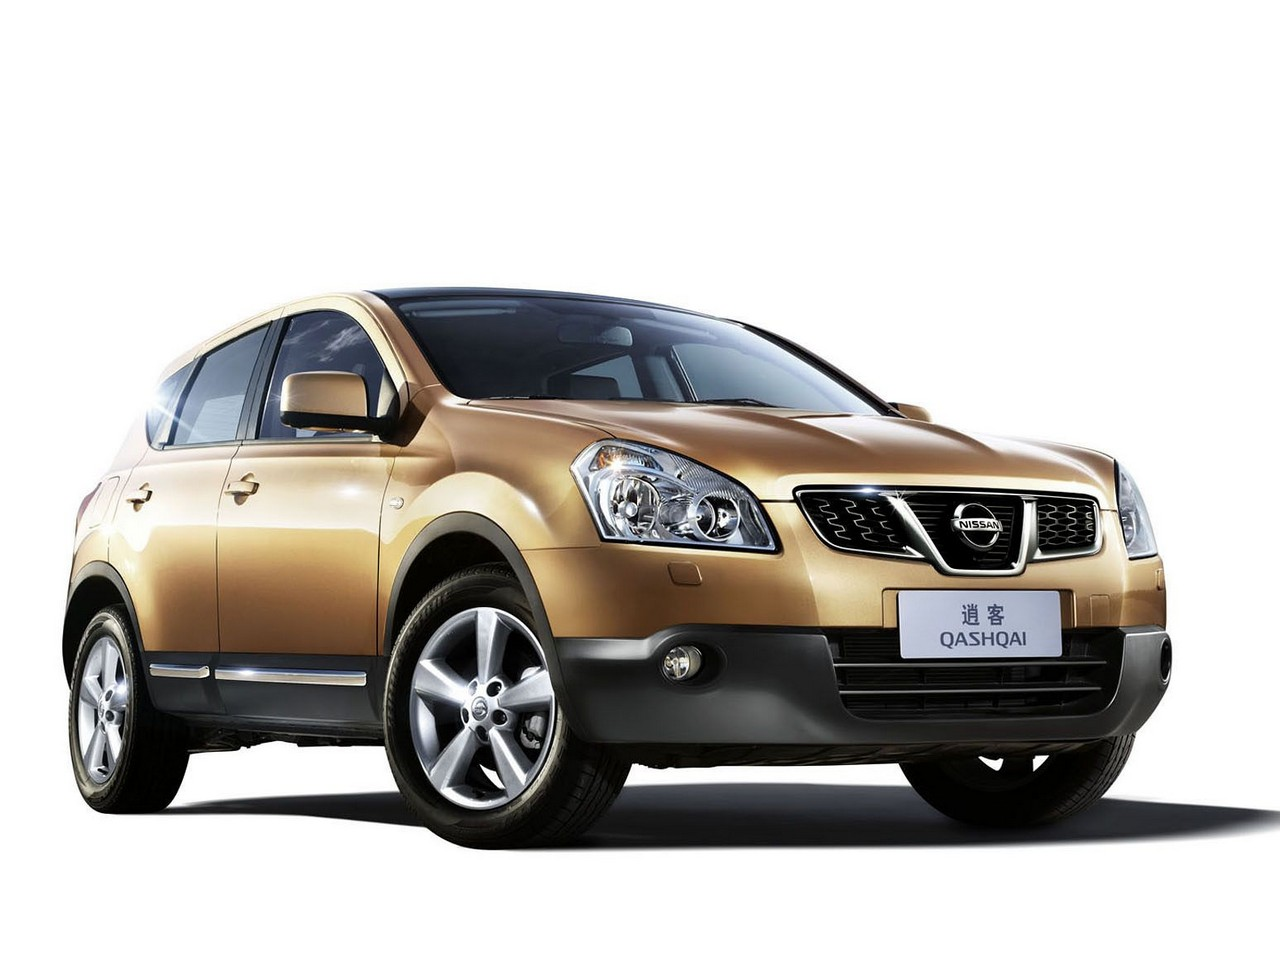 nissan qashqai xiaoke 2011 nissan qashqai xiaoke 2011 photo 03 car in pictures car photo gallery. Black Bedroom Furniture Sets. Home Design Ideas